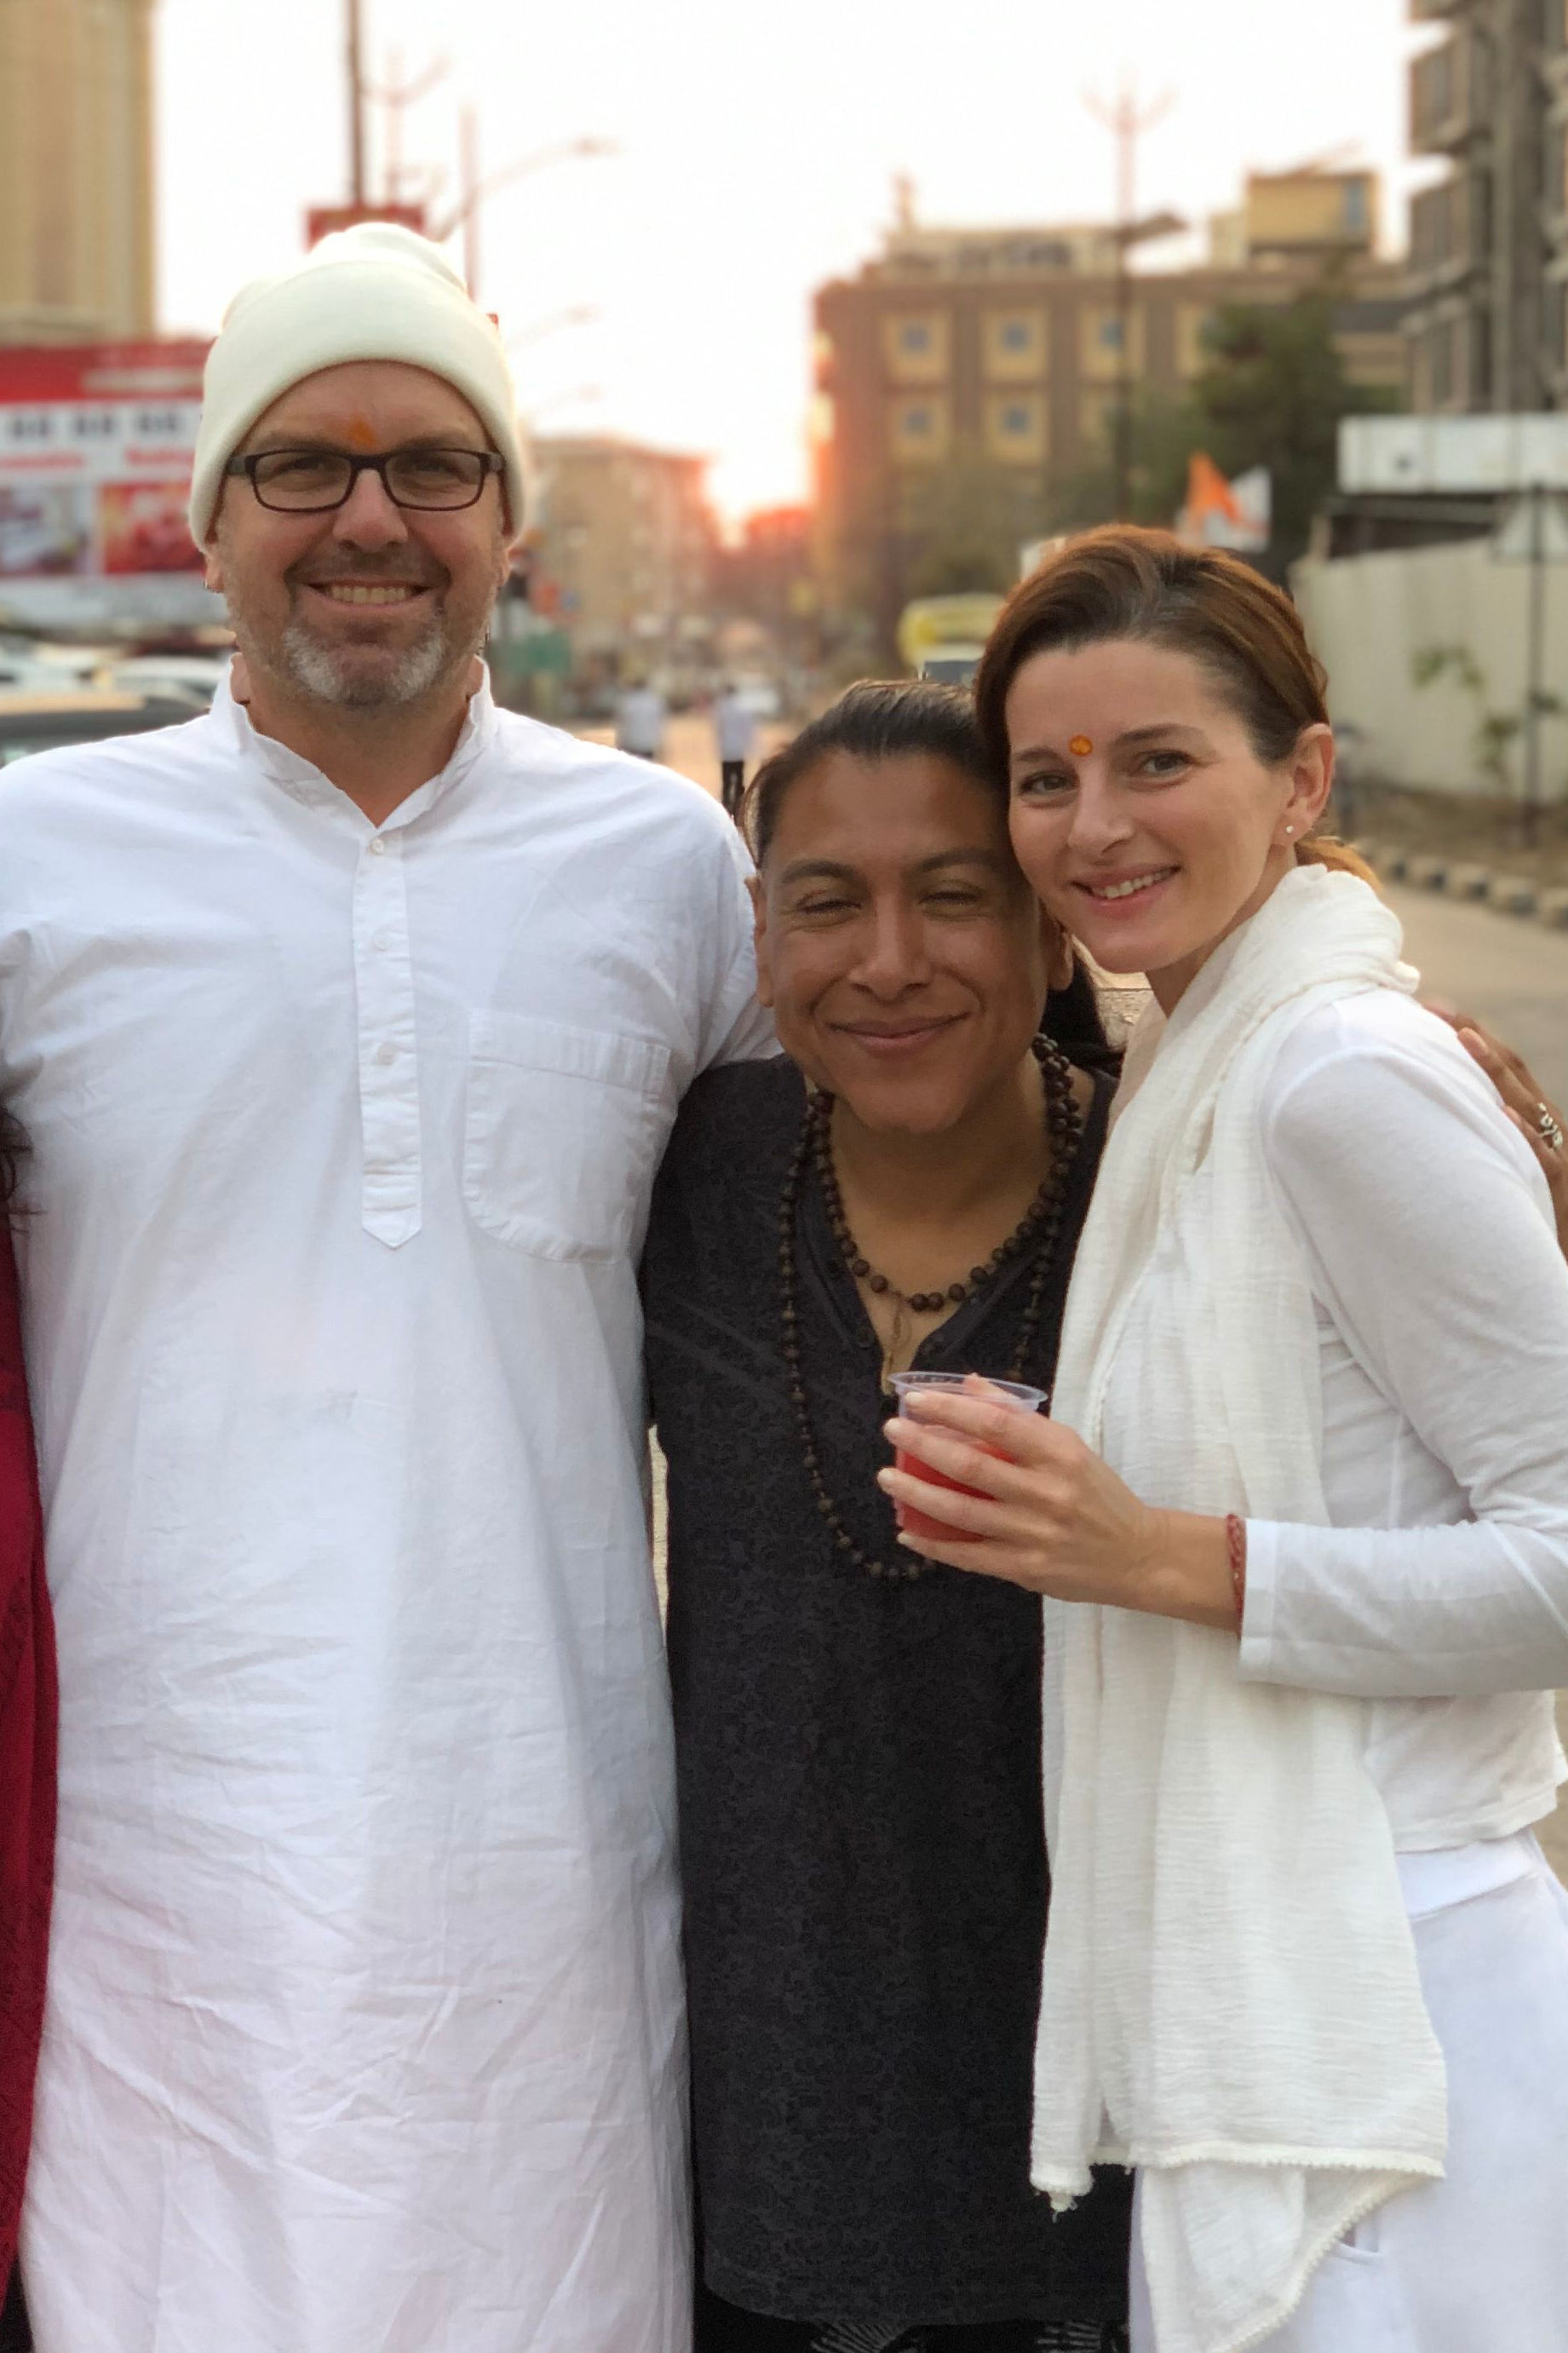 Ramakrishna, Jose & Kayla after darshan in Shirdi